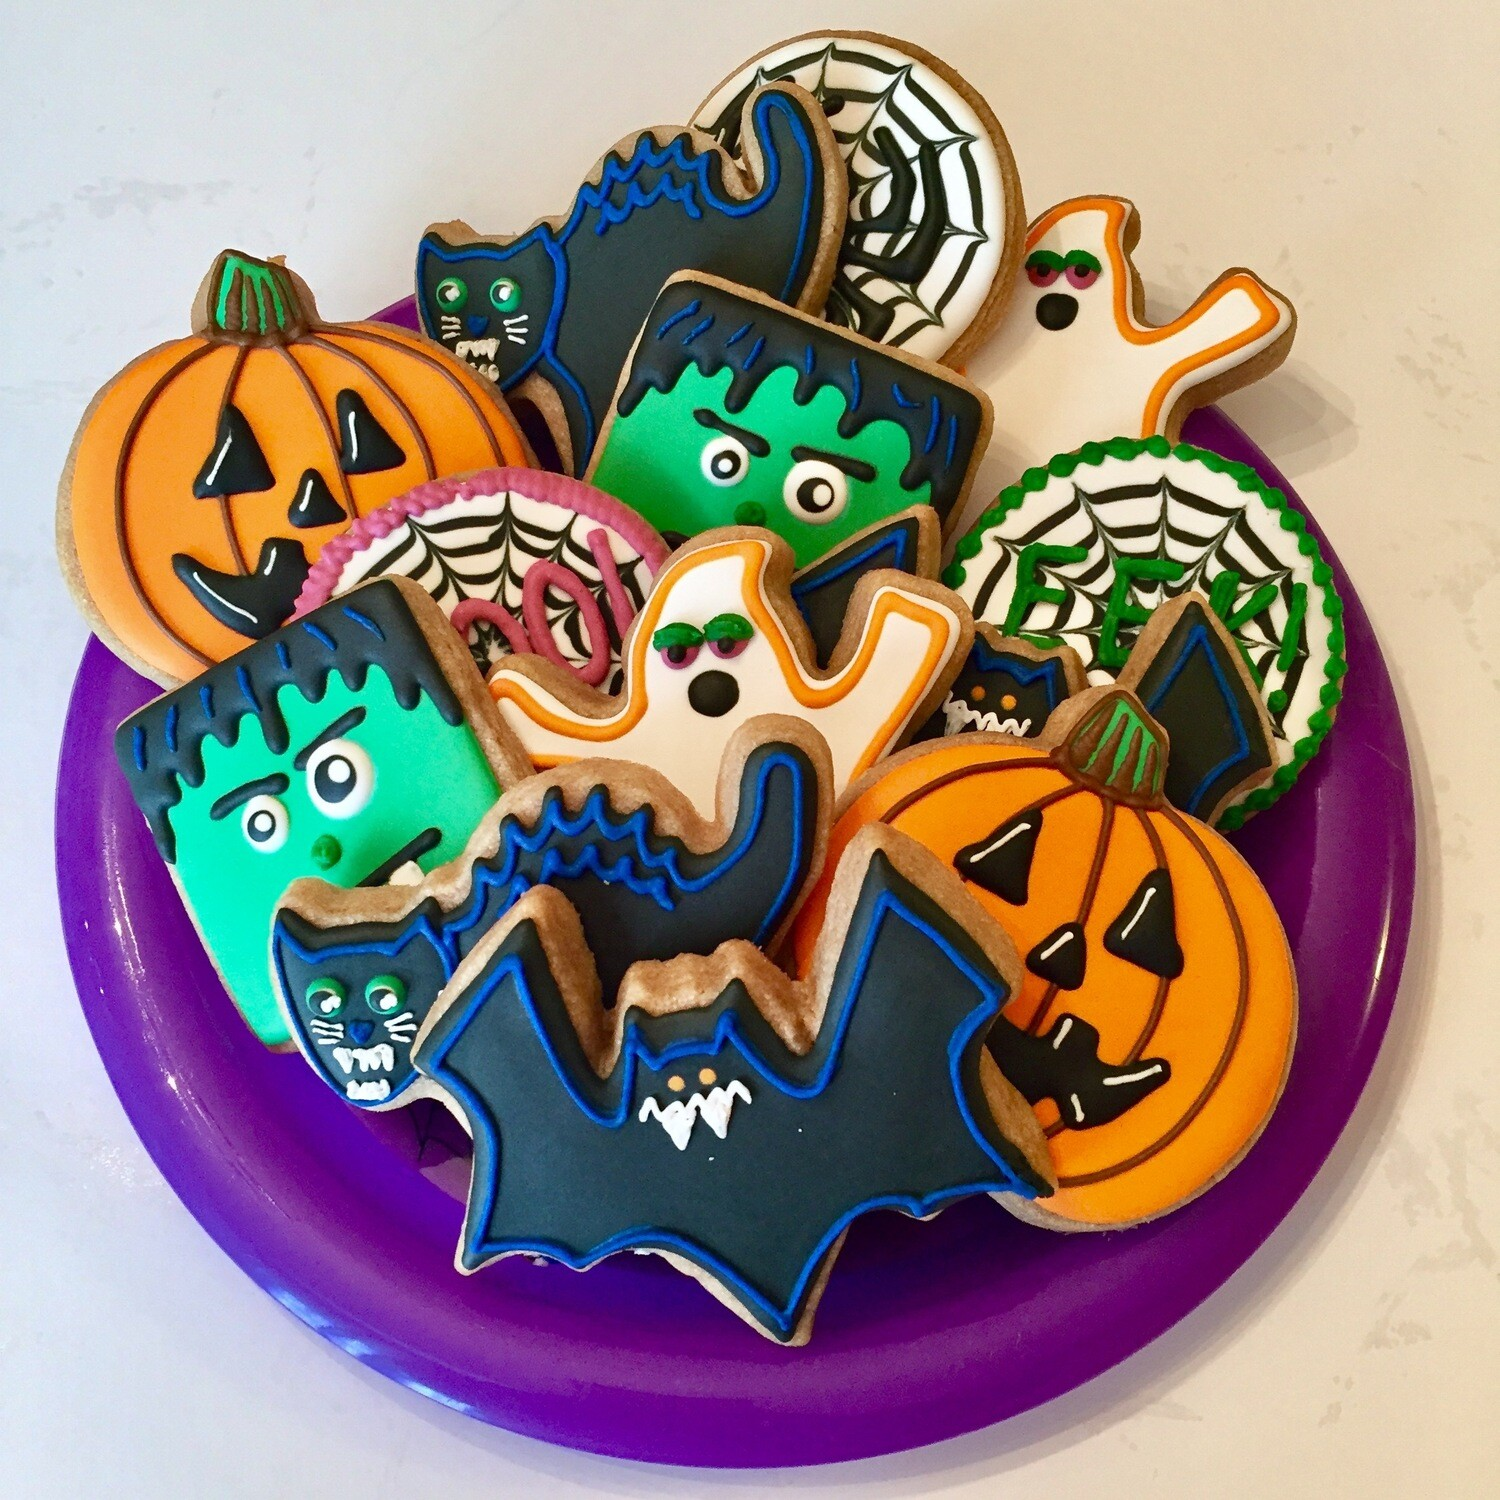 HALLOWEEN Decorating Workshop (BYOB) - MONDAY, OCTOBER 28th at 6:30 p.m. (WYLDE ACRES) BYOB